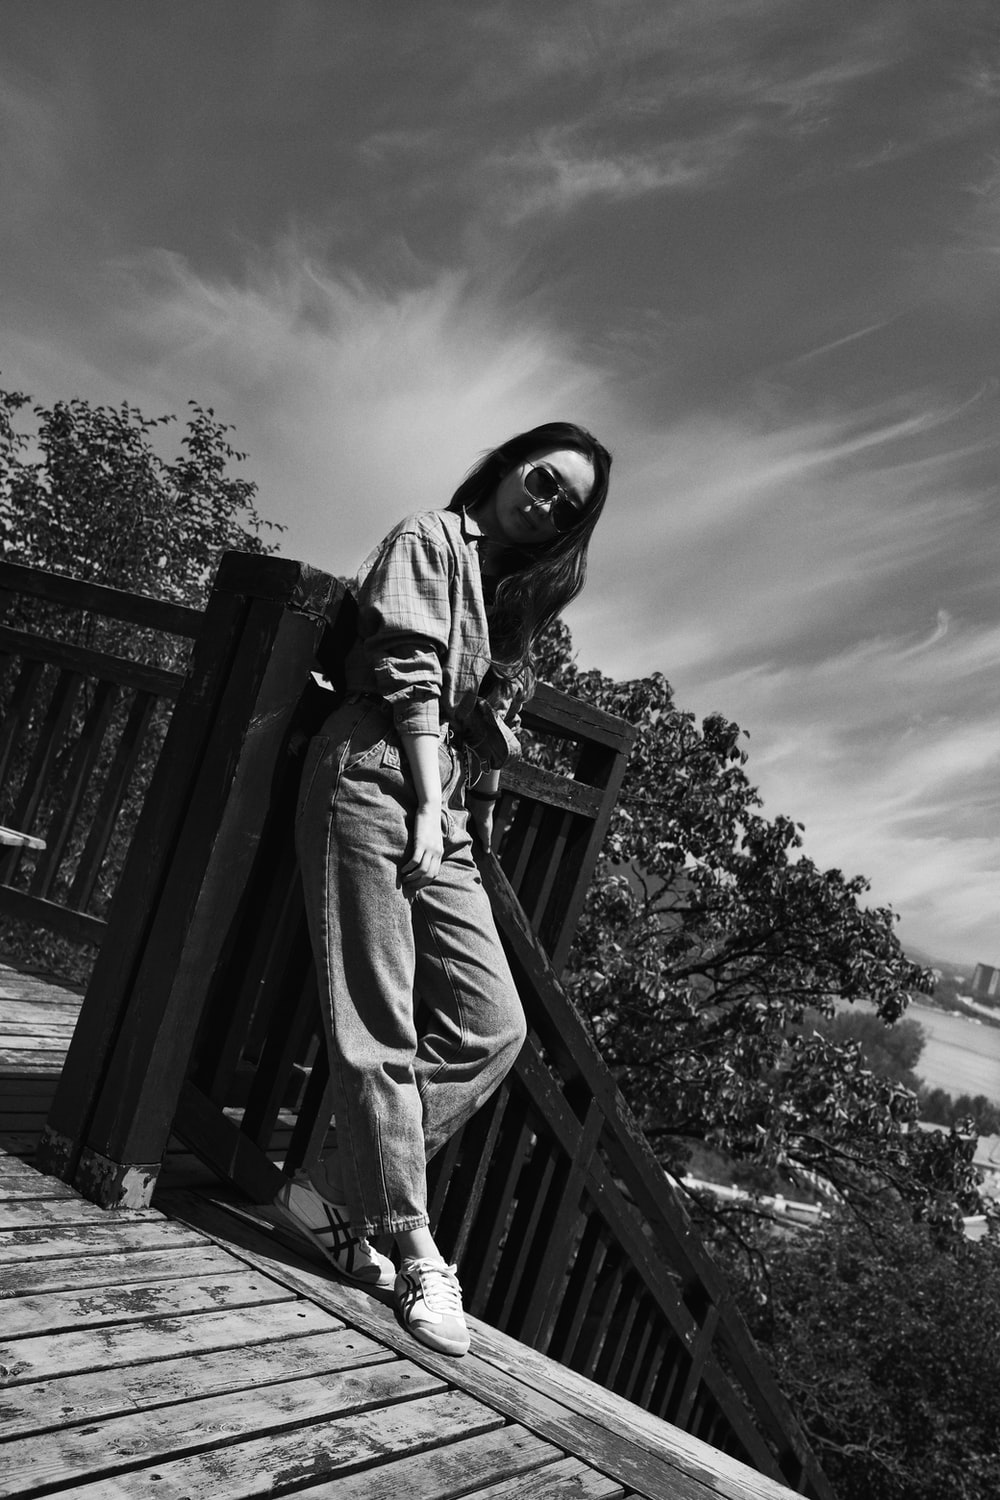 grayscale photo of person in hoodie and pants standing on wooden dock